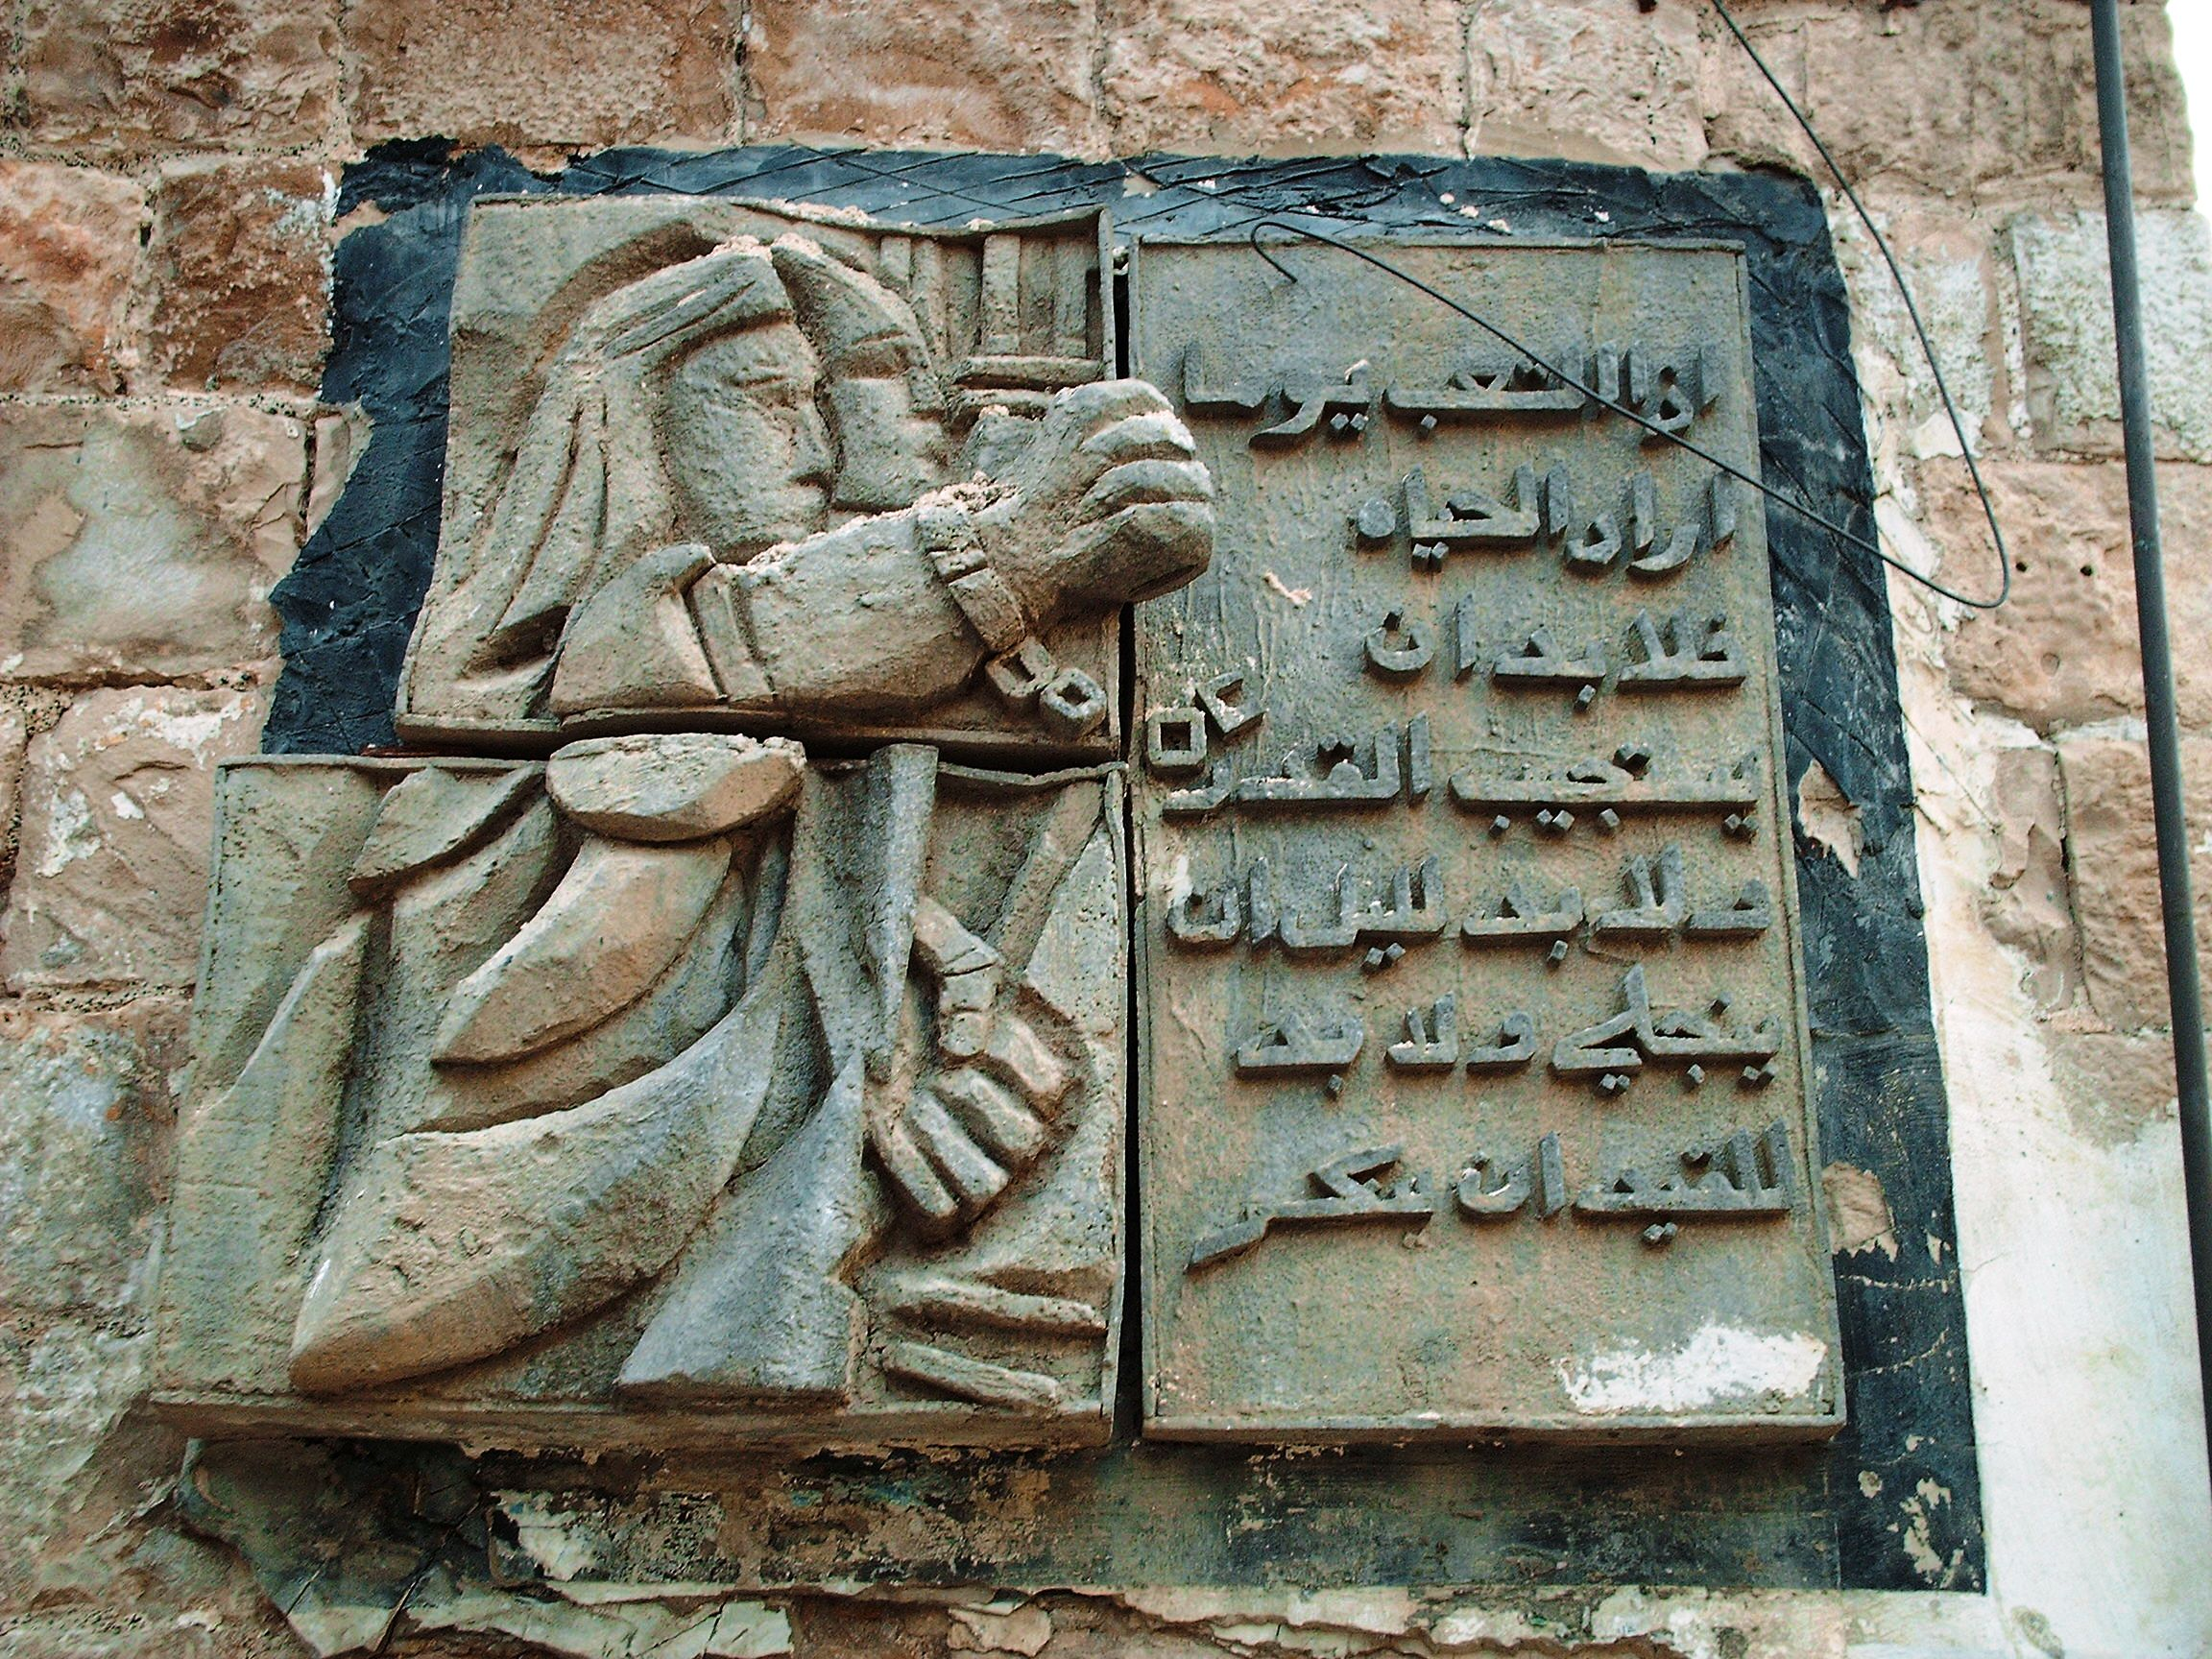 Nazareth - الناصرة : Sculpture with Arabic poetry: When people decide to live, destiny shall obey, and one day darkness will disappear, and the slavery chains must be broken. (poetry by Abu Al-Qasem Al-Shabi)